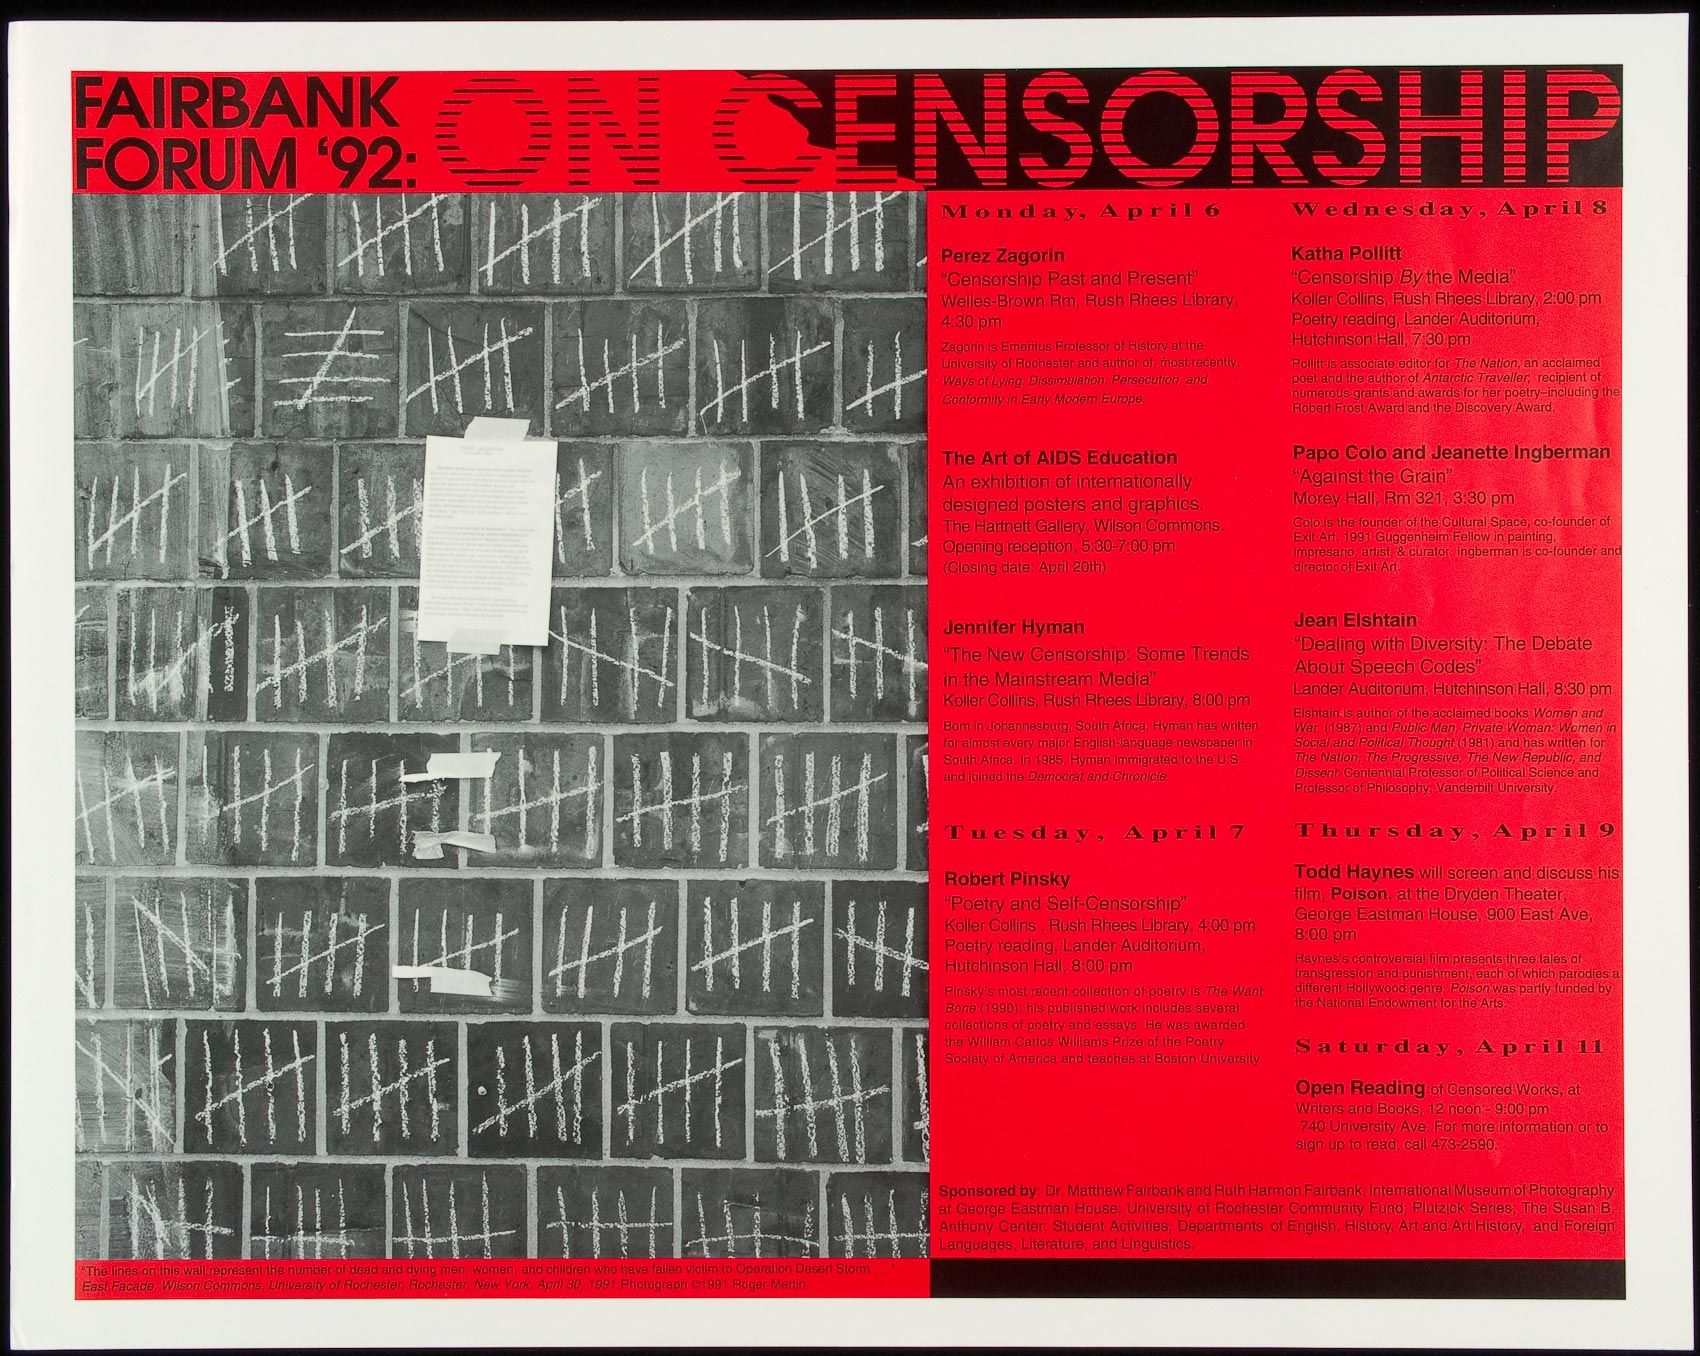 the censorship debate The censorship debate essays: over 180,000 the censorship debate essays, the censorship debate term papers, the censorship debate research paper, book reports 184 990 essays, term and research papers available for unlimited access.